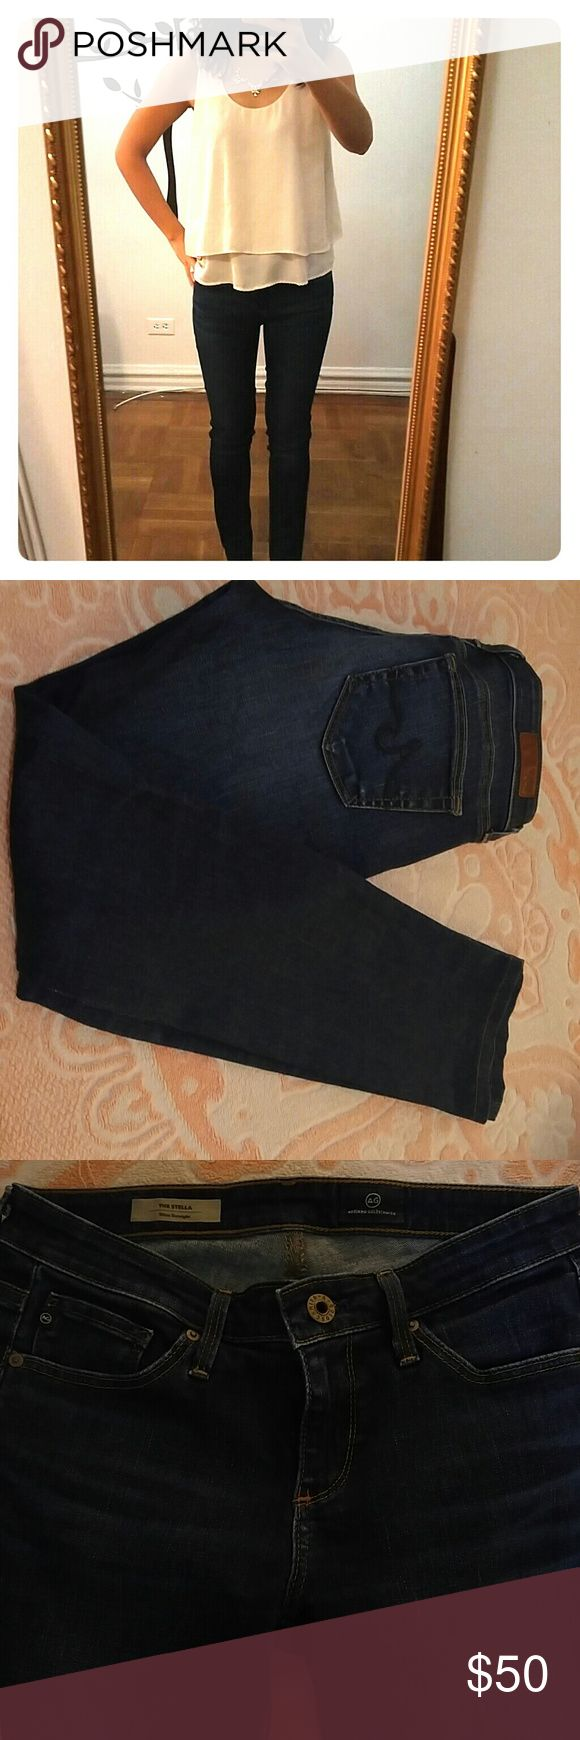 """AG """"the Stella"""" jeans in dark blue Super comfy dark blue Slim straight jeans with great stretch. Hemmed to fit petite size (I'm 5 foot 2). Great condition. AG Adriano Goldschmied Jeans Straight Leg"""